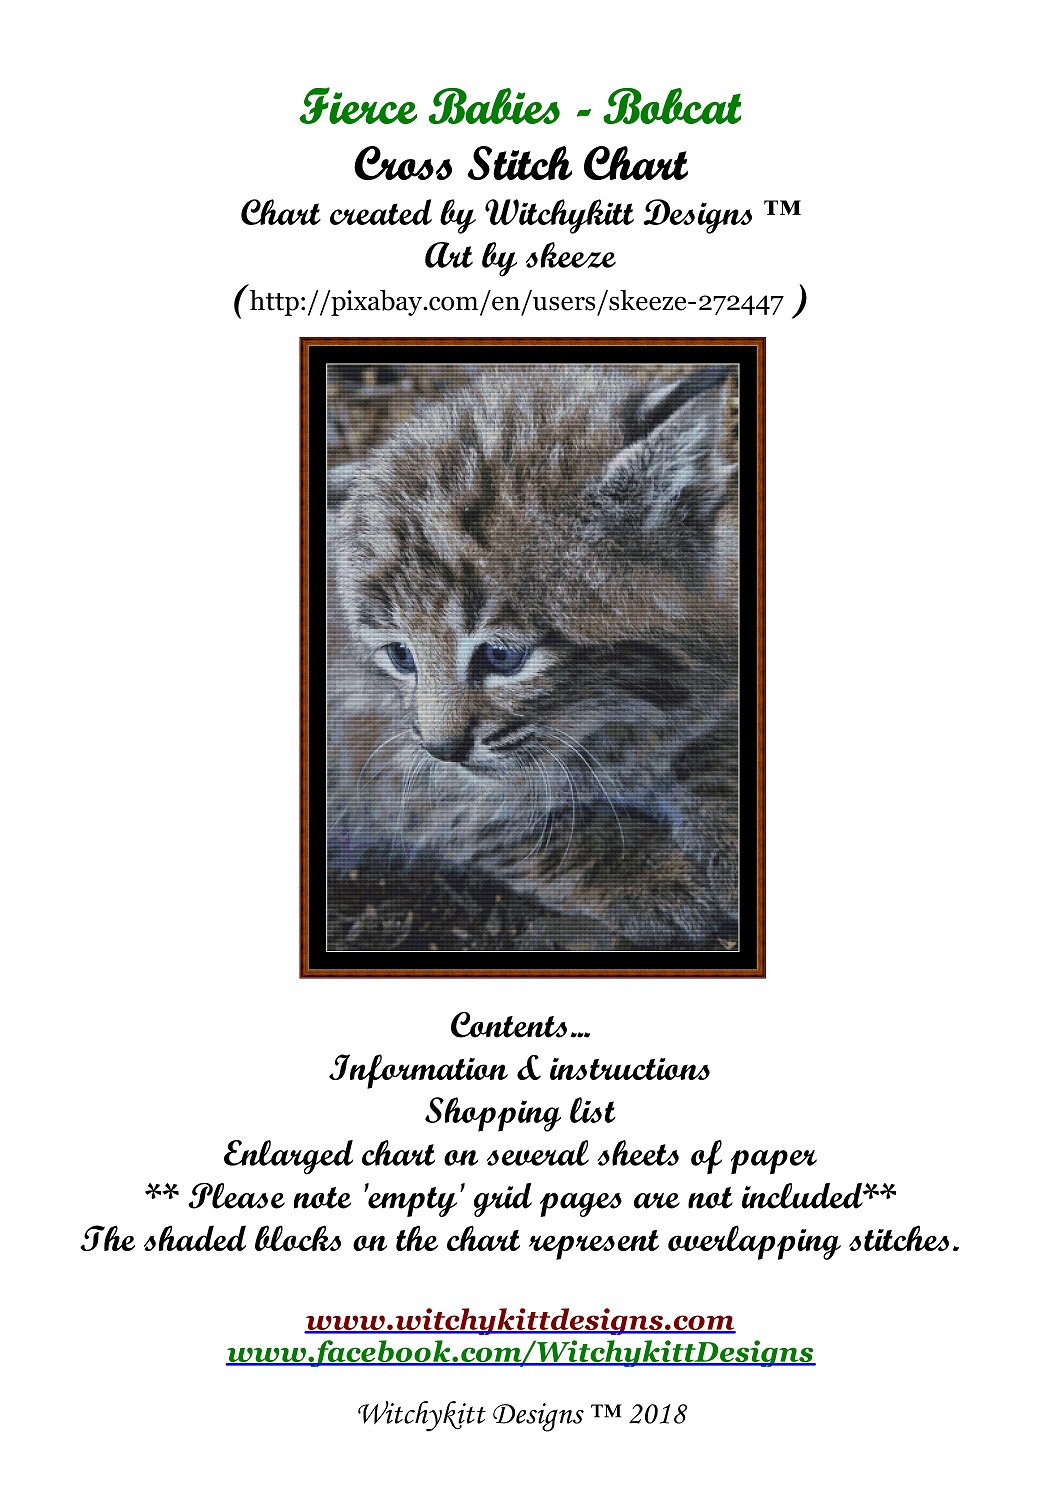 Fierce Babies - Bobcat Cross Stitch